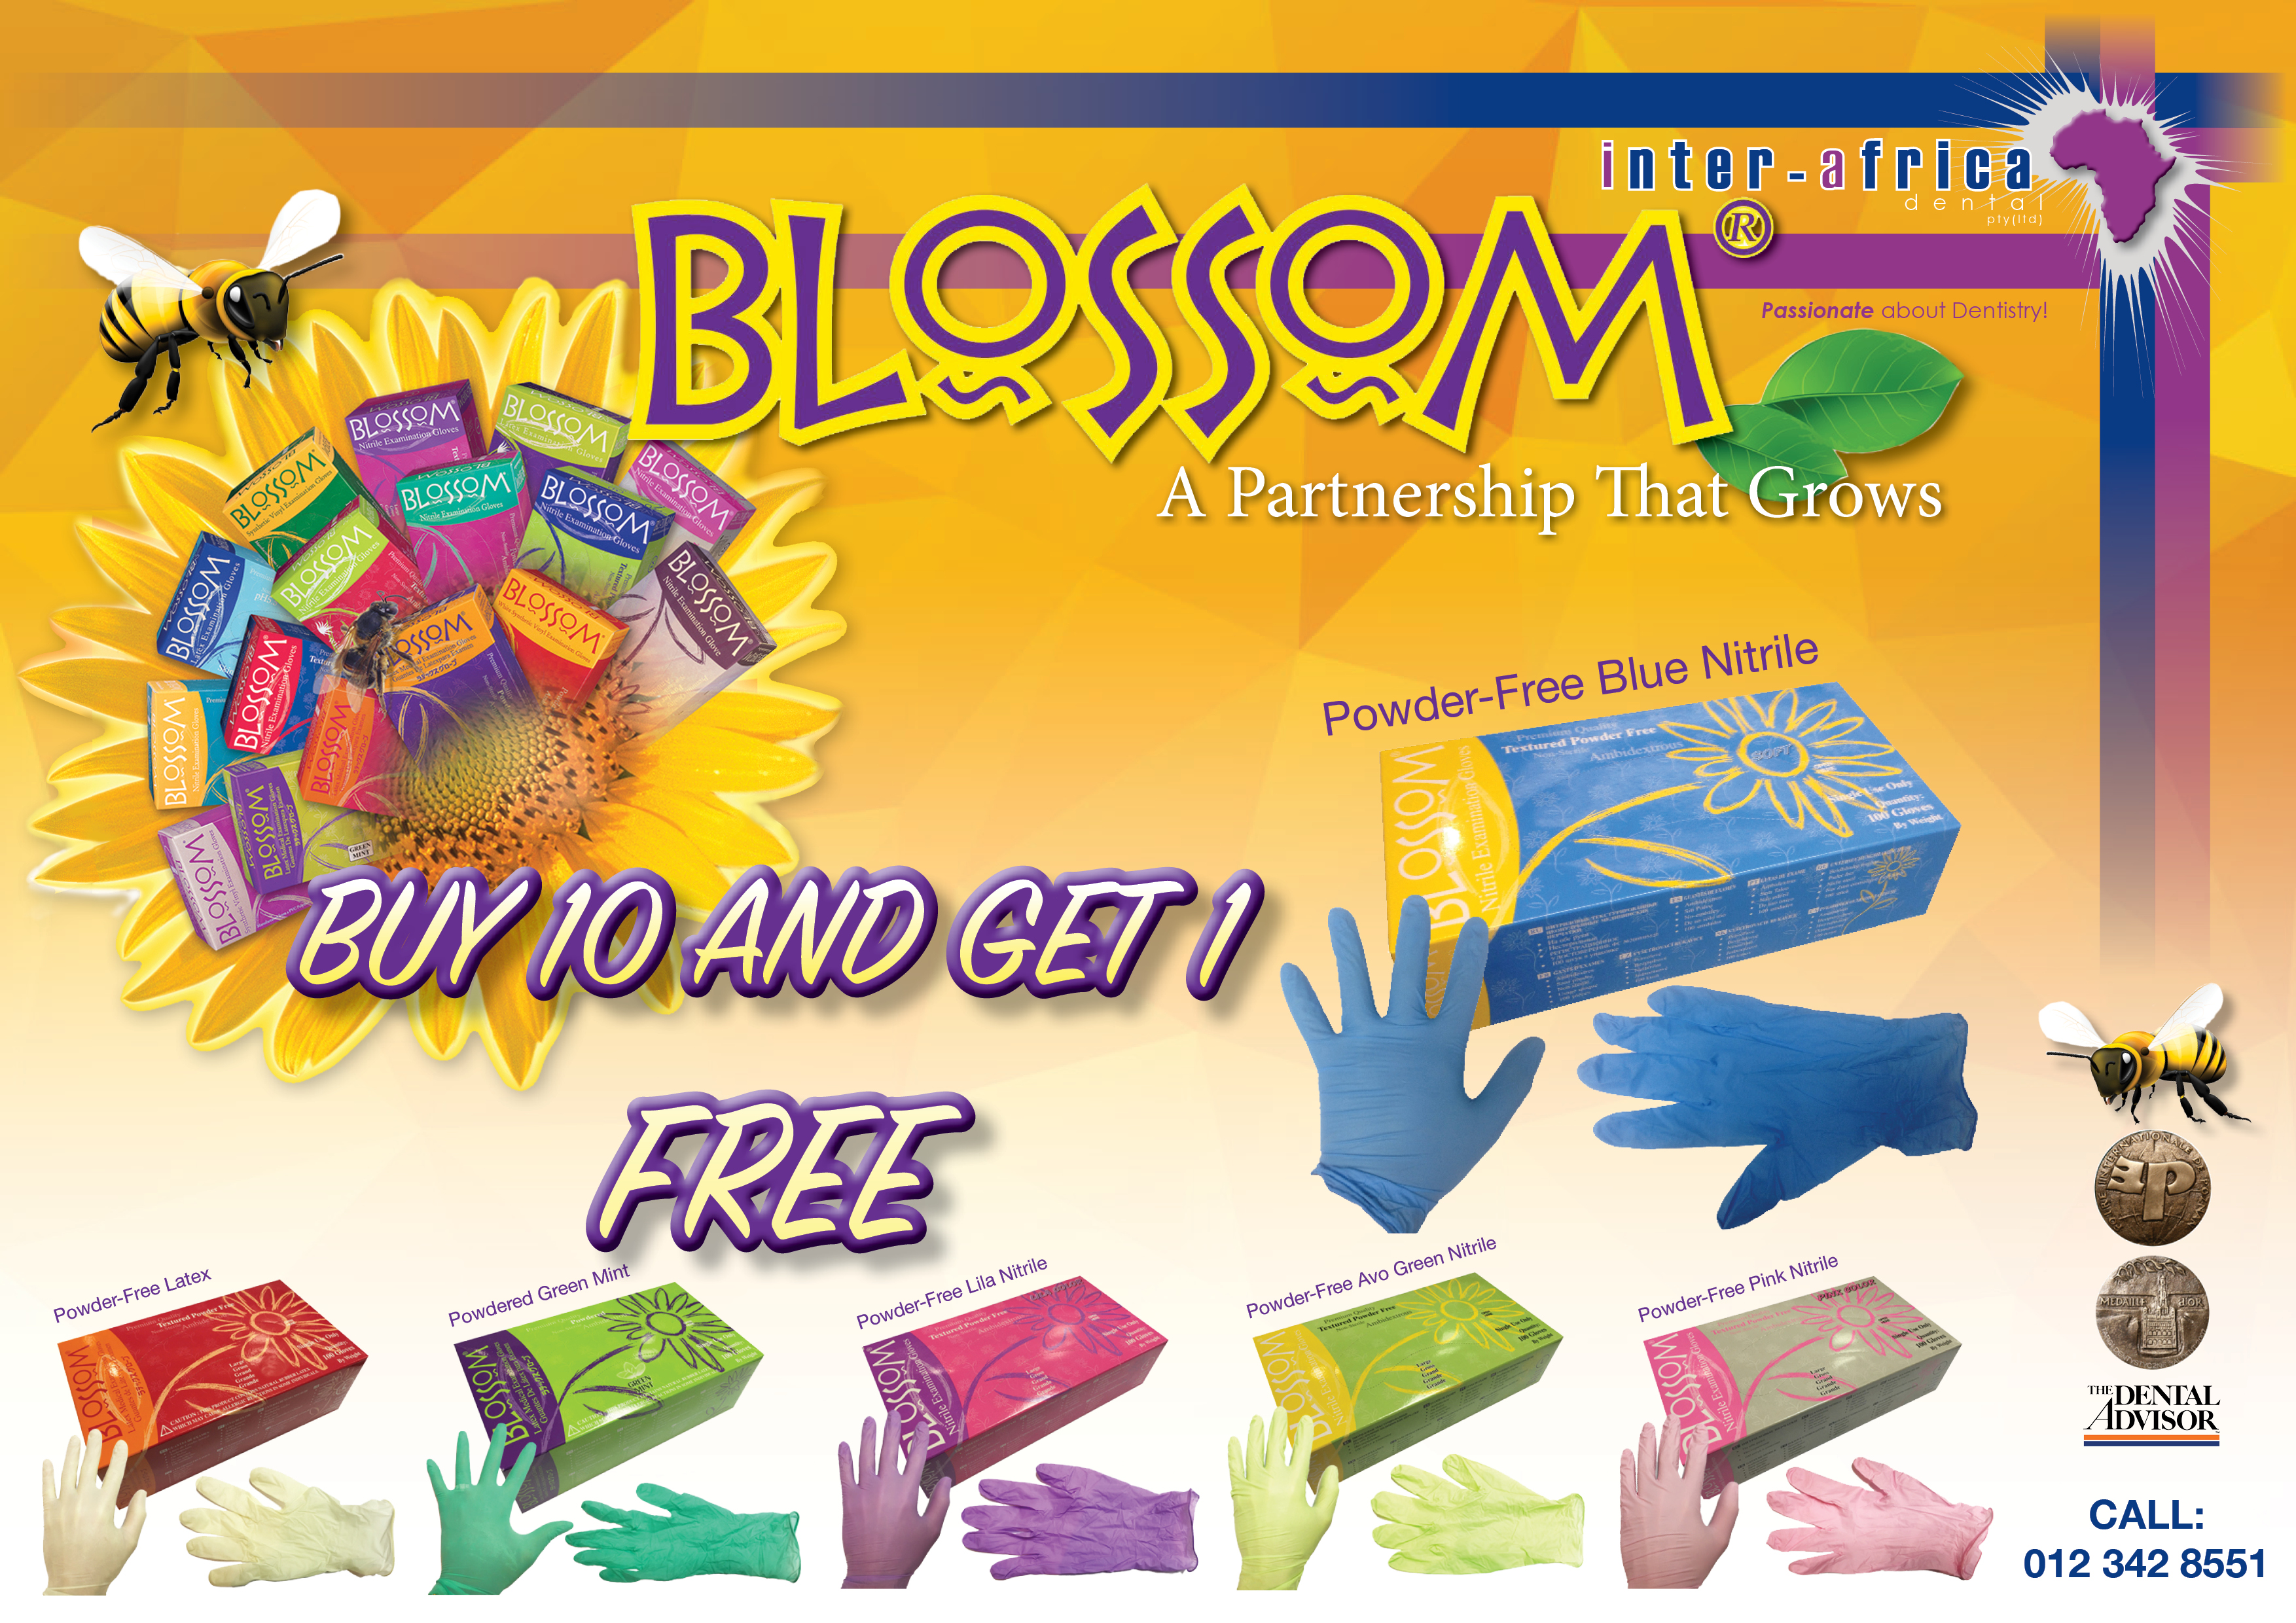 Blossom Gloves | Dental Supplier South Africa - Inter Africa Dental